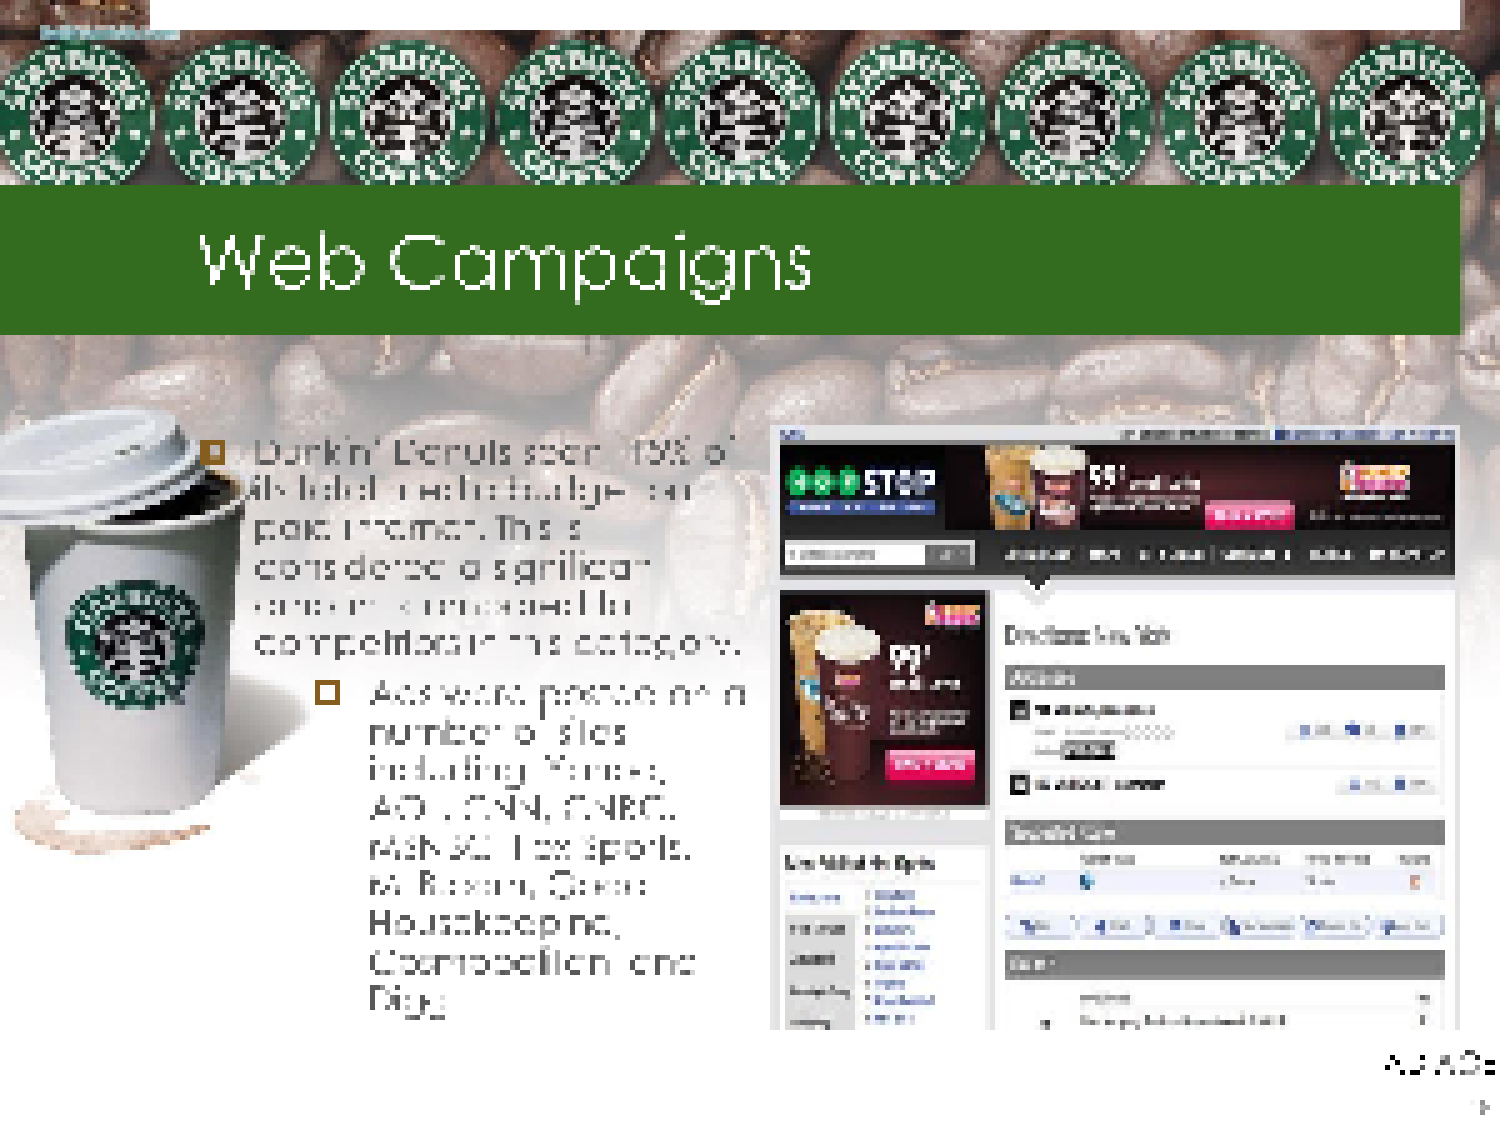 management in action starbucks marketing essay This marketing report is a guidebook that will help our marketing management team implement our latest marketing strategies we have provided our executive summary, current situation analysis, and future marketing strategy.